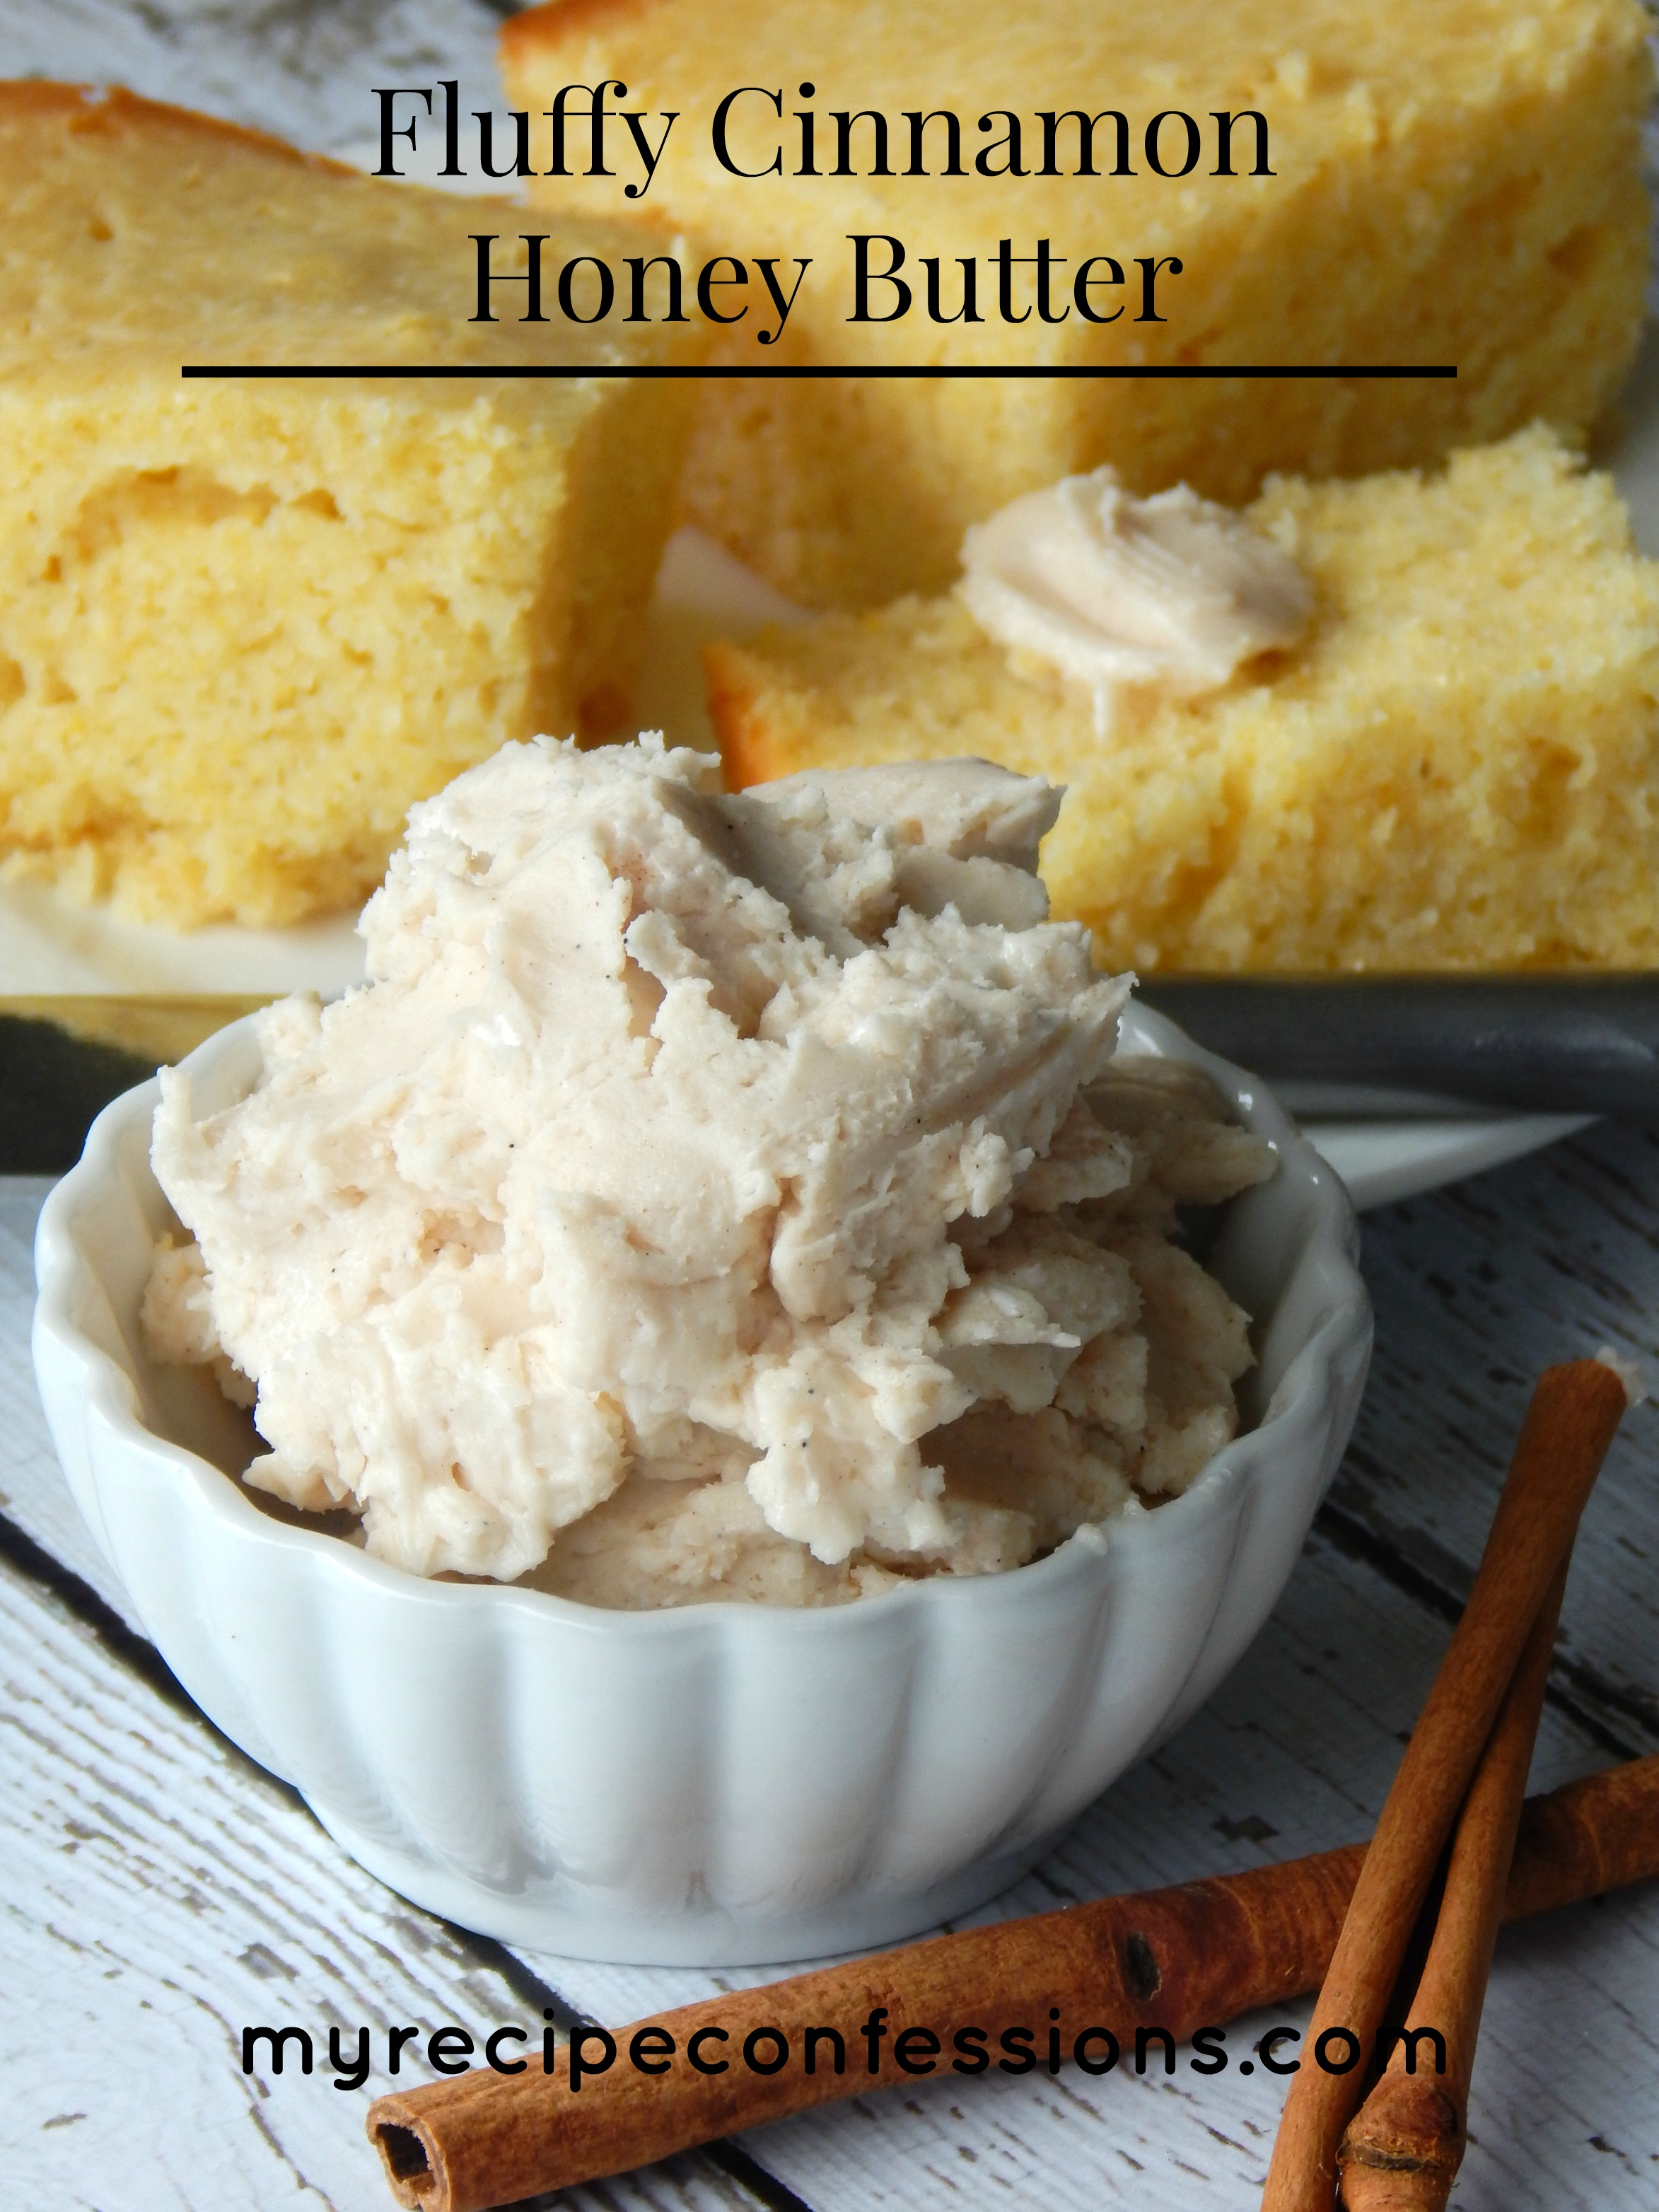 Fluffy Cinnamon Honey Butter